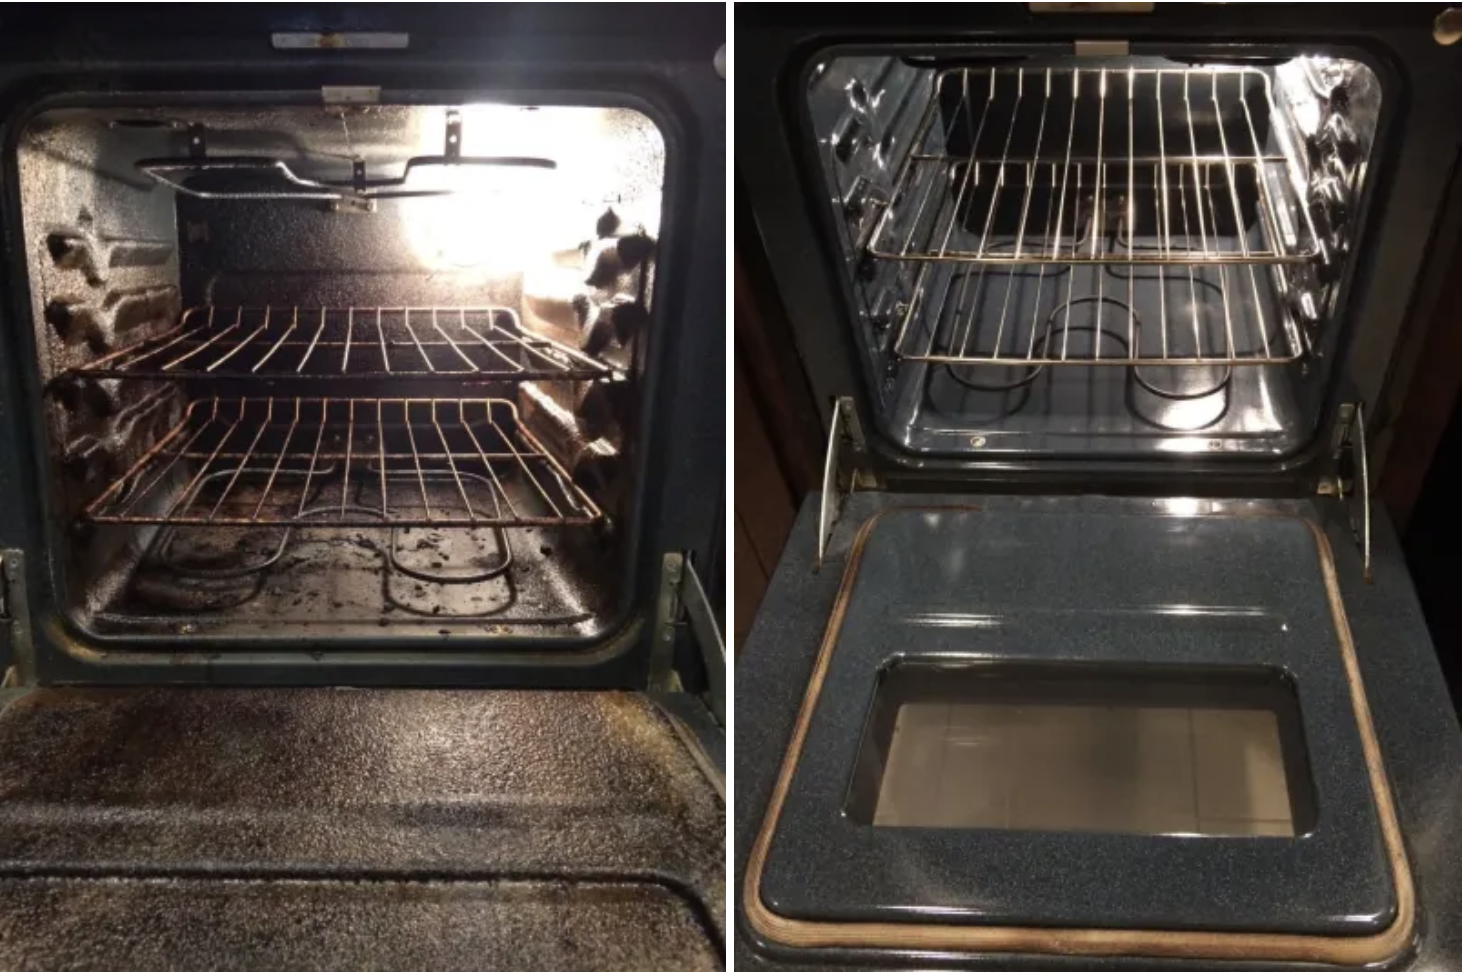 Left: A reviewer's dirty, grease-baked-on oven / right: The same oven, shiny and clean after using the cleaner